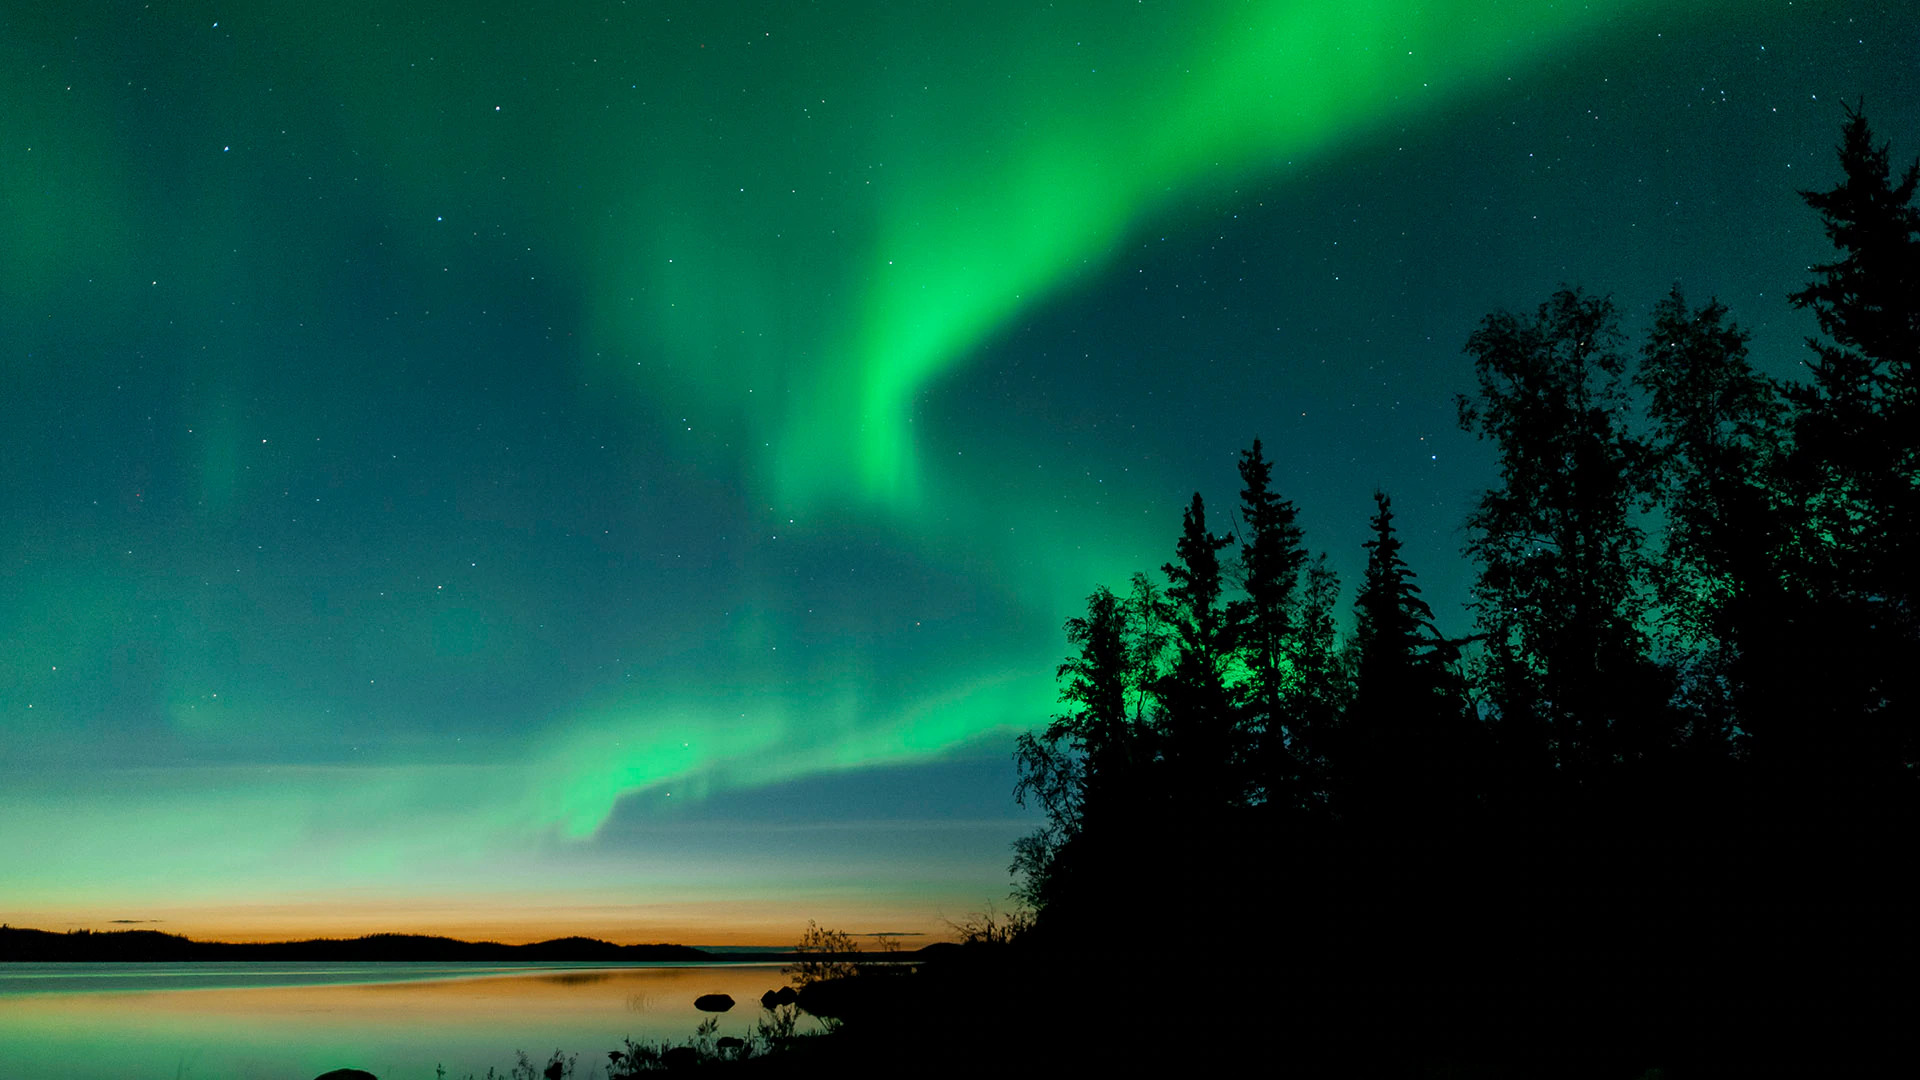 The Wonders of the Northern Lights